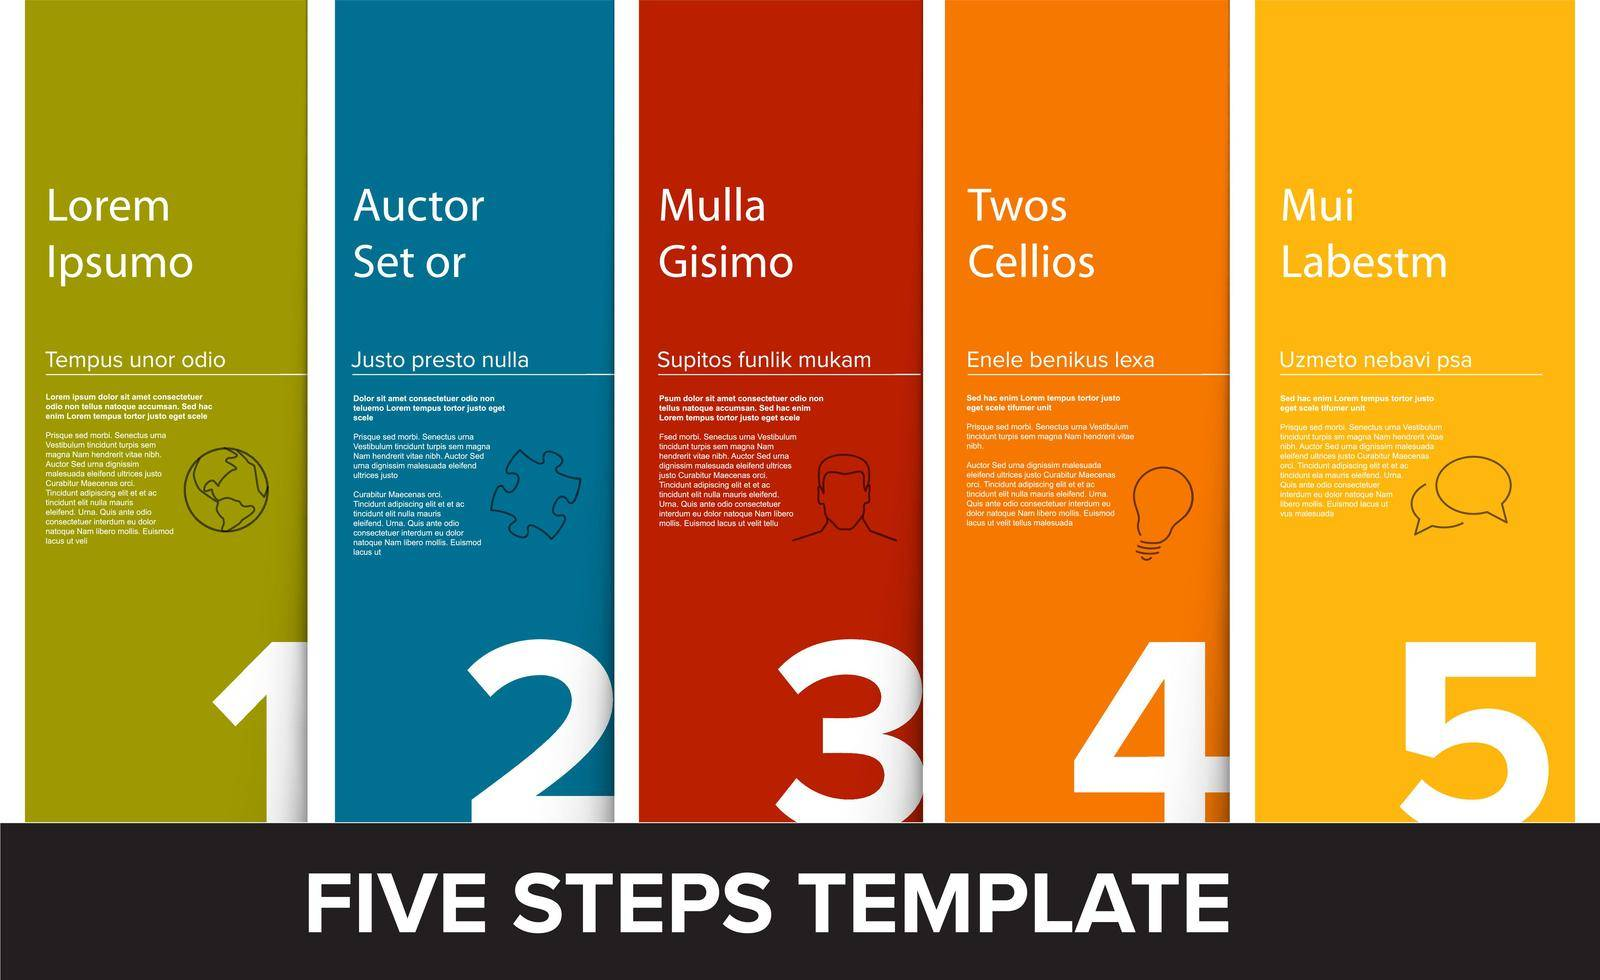 One two three four five vector light progress steps template with descriptions, flat colors and icons